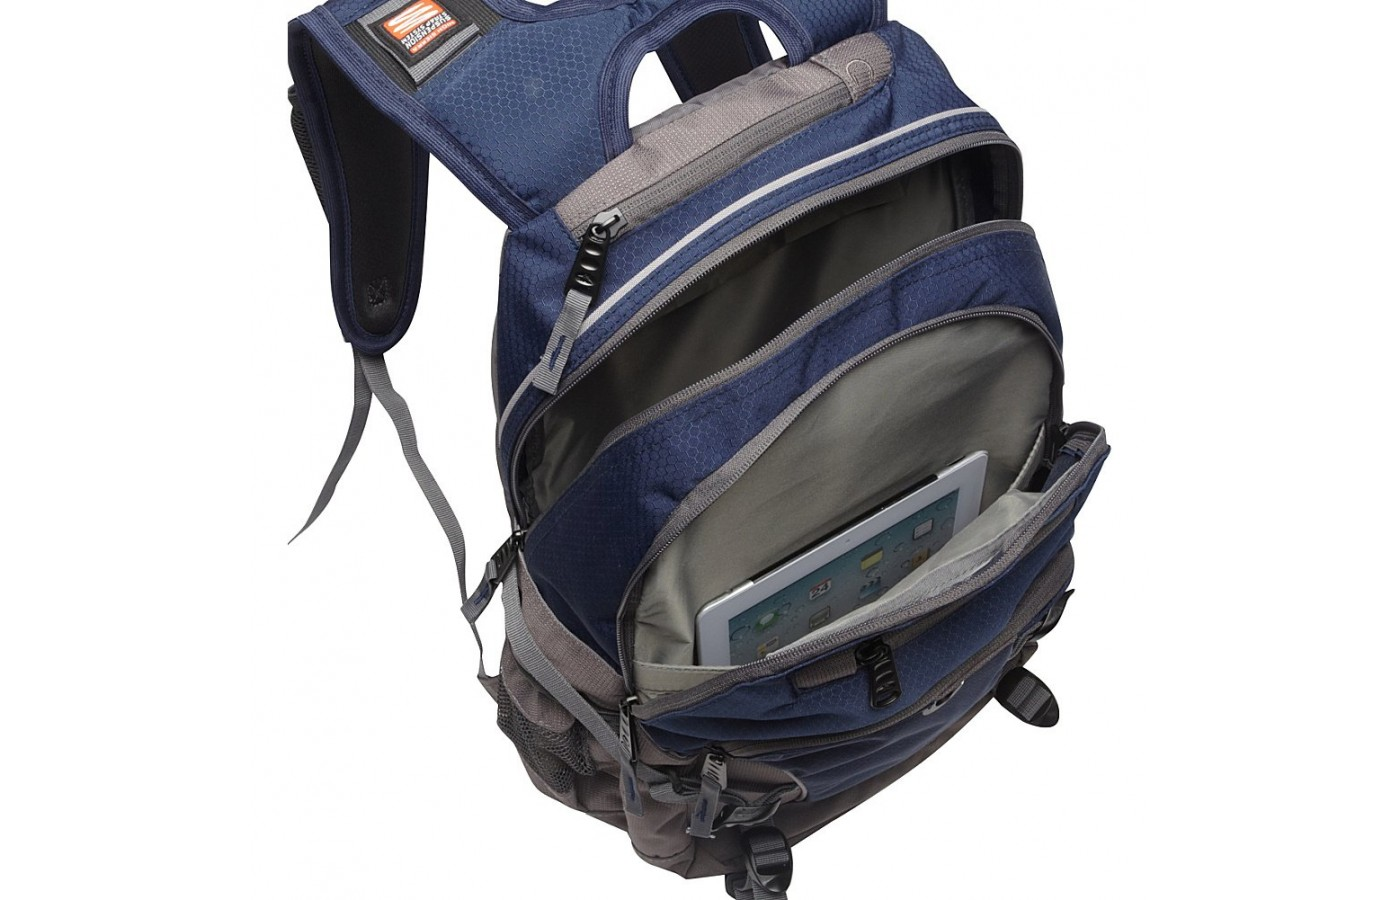 The main compartment can hold a laptop, three-ring binders, textbooks, or a combination of the three.